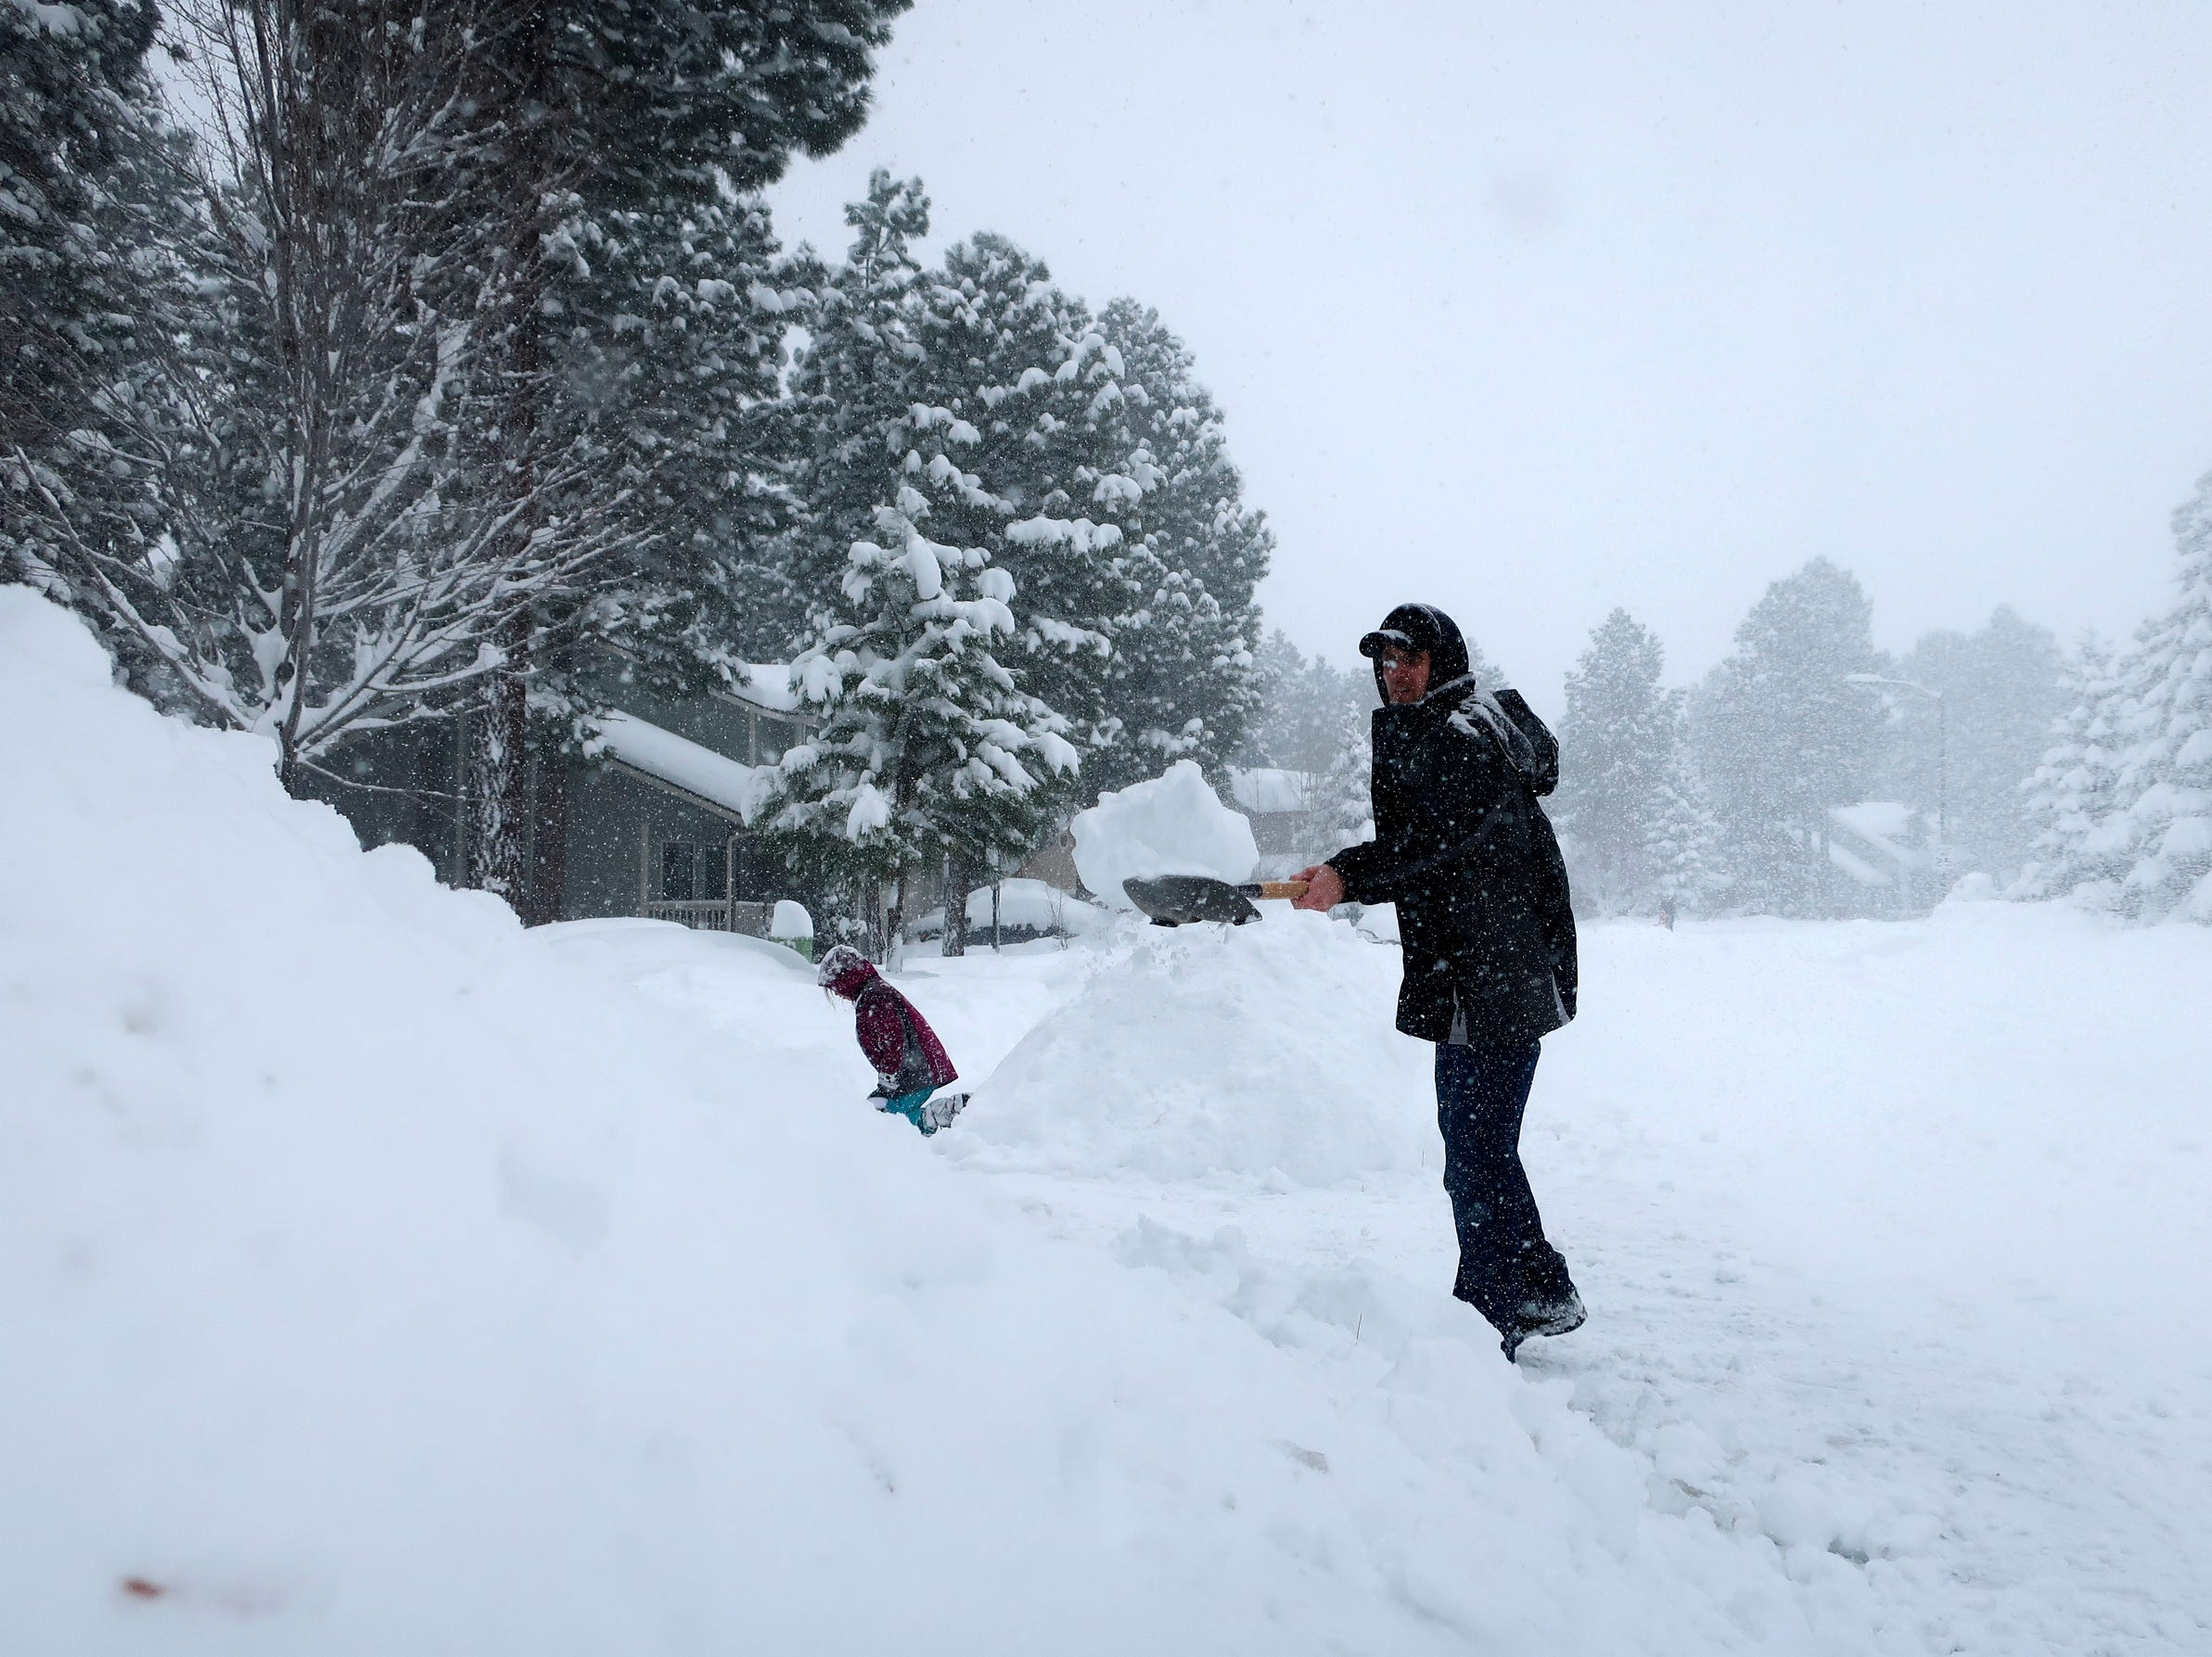 Morgan Baggs shovels the driveway at his home in Flagstaff, Arizona, on Thursday, Feb. 21, 2019. Schools across northern Arizona canceled classes and some government offices decided to close amid a winter storm that's expected to dump heavy snow in the region.